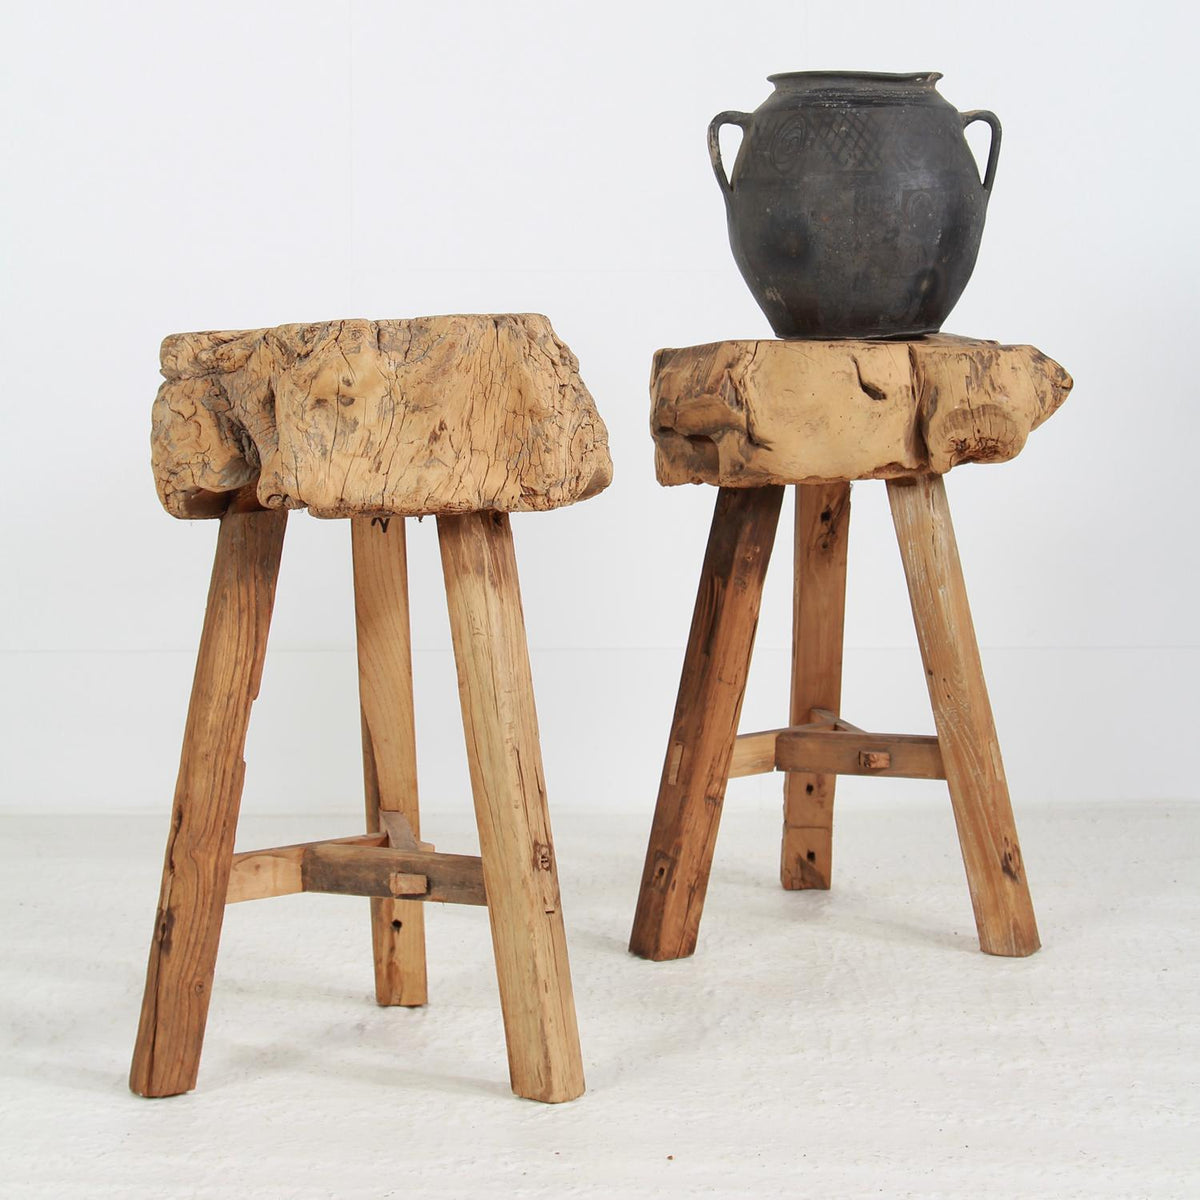 Two Rustic Chinese Gnarly Butchers Block Tables